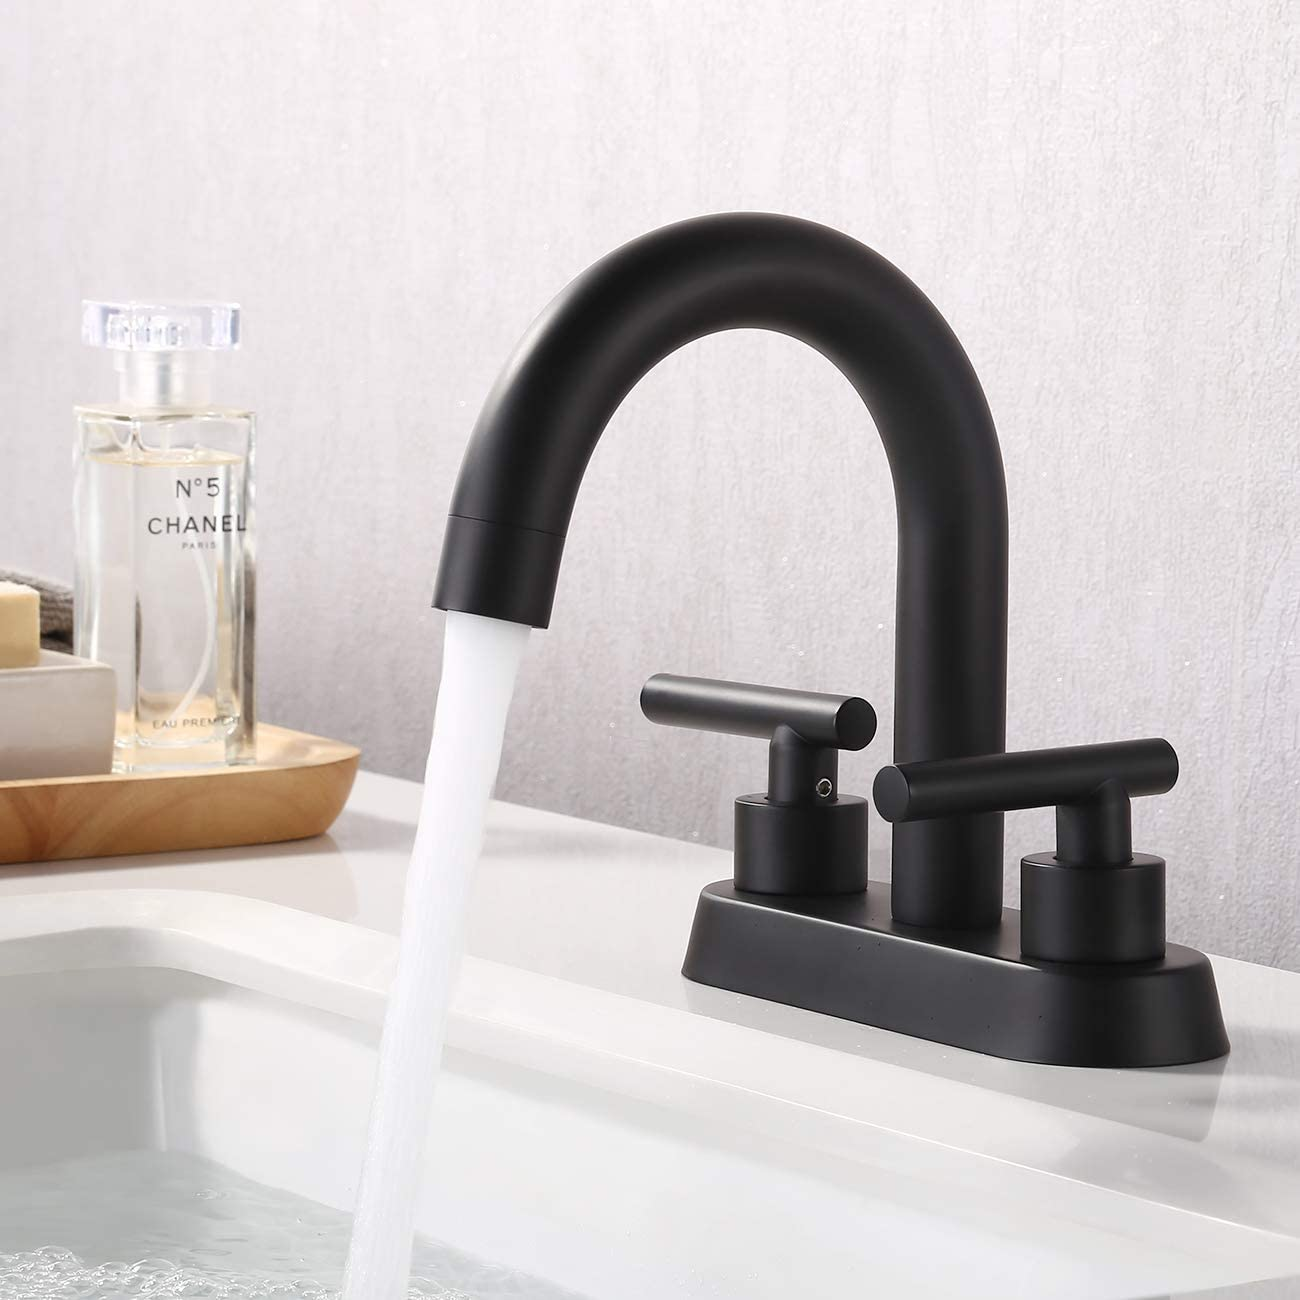 KES Matte Black 2 Handles Bathroom Sink Faucet Modern 4 Inches Centerset Vanity Faucet Lead Free Brass Construction, L4117LF-BK